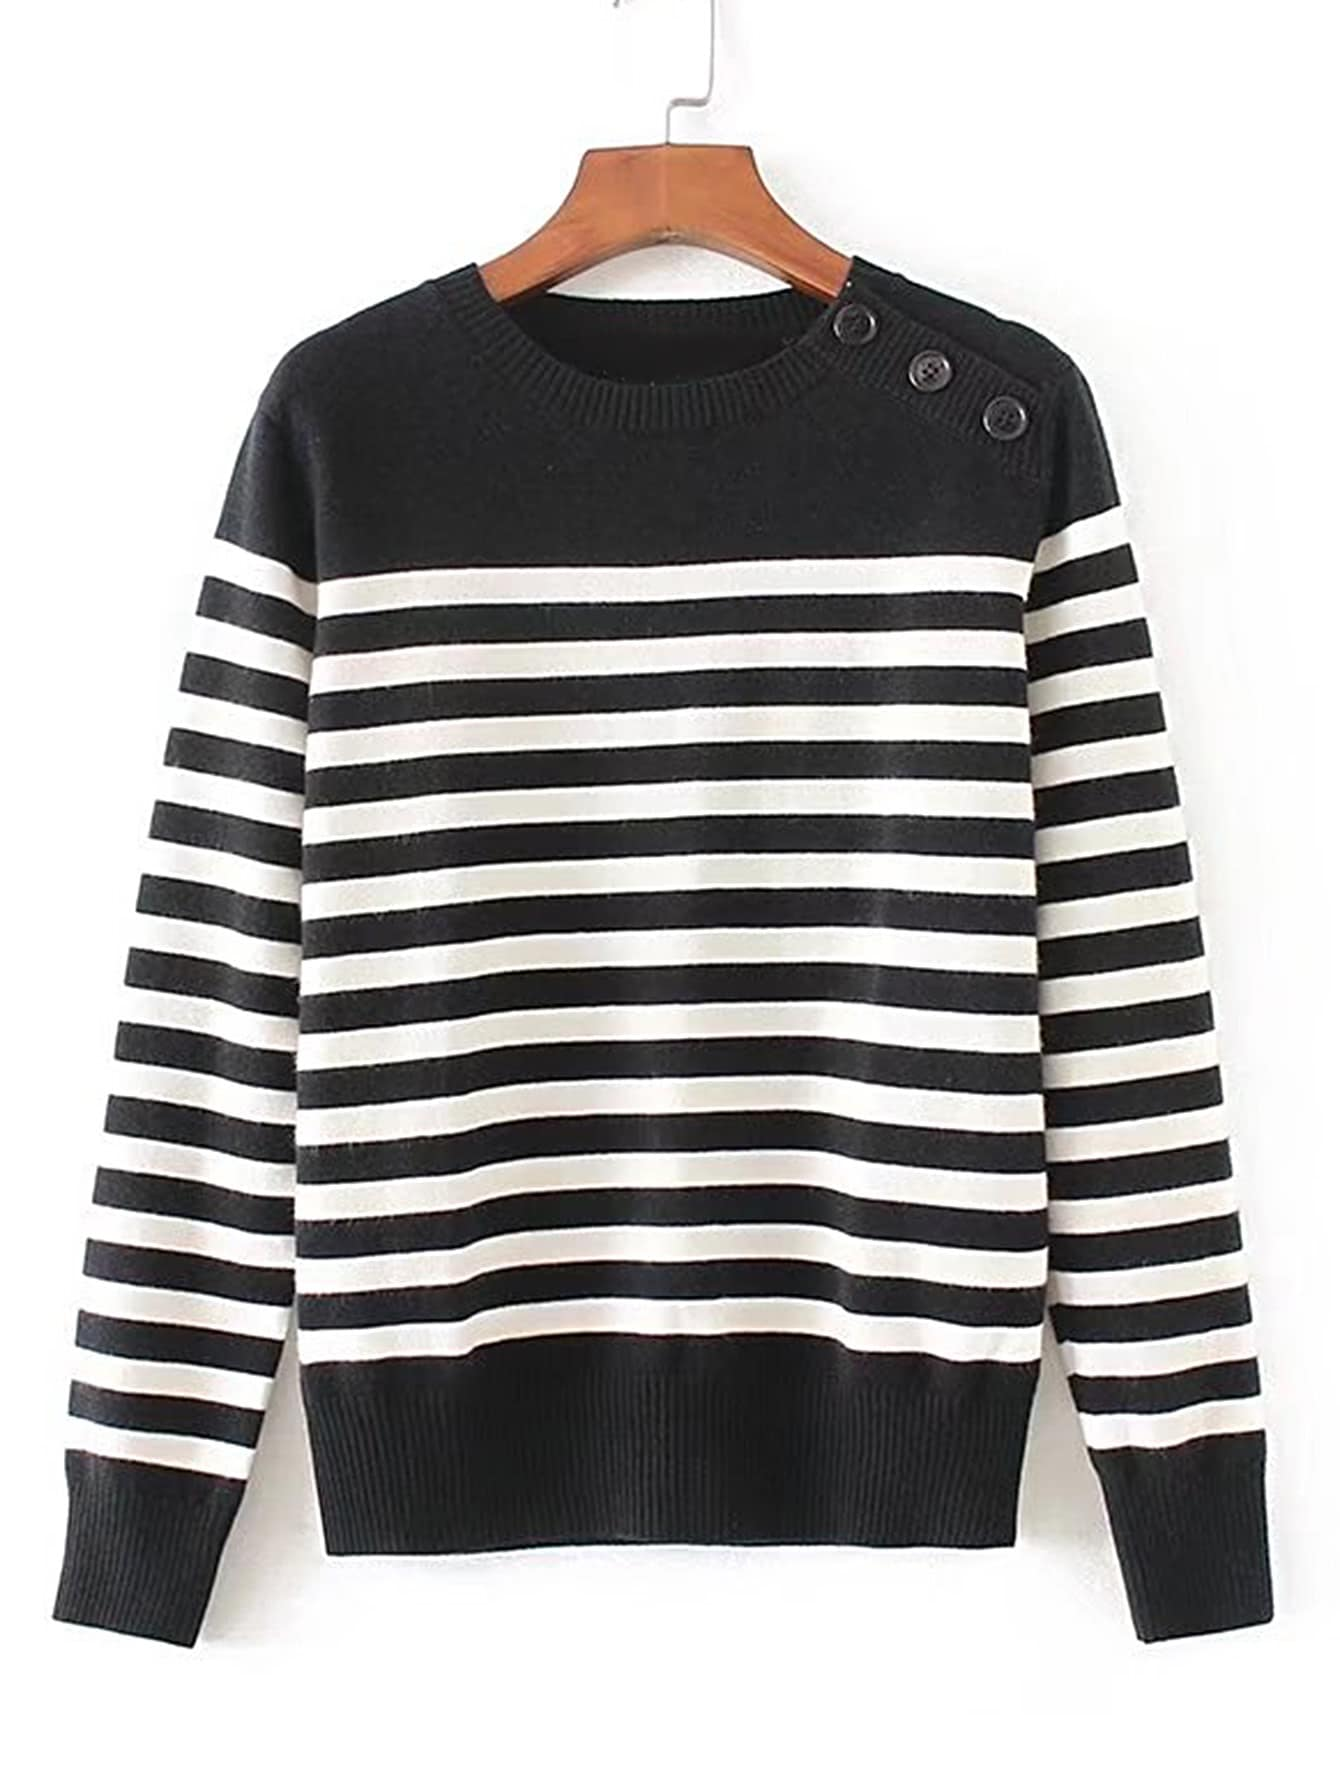 Contrast Striped Ribbed Trim Knitwear RKNI170727201